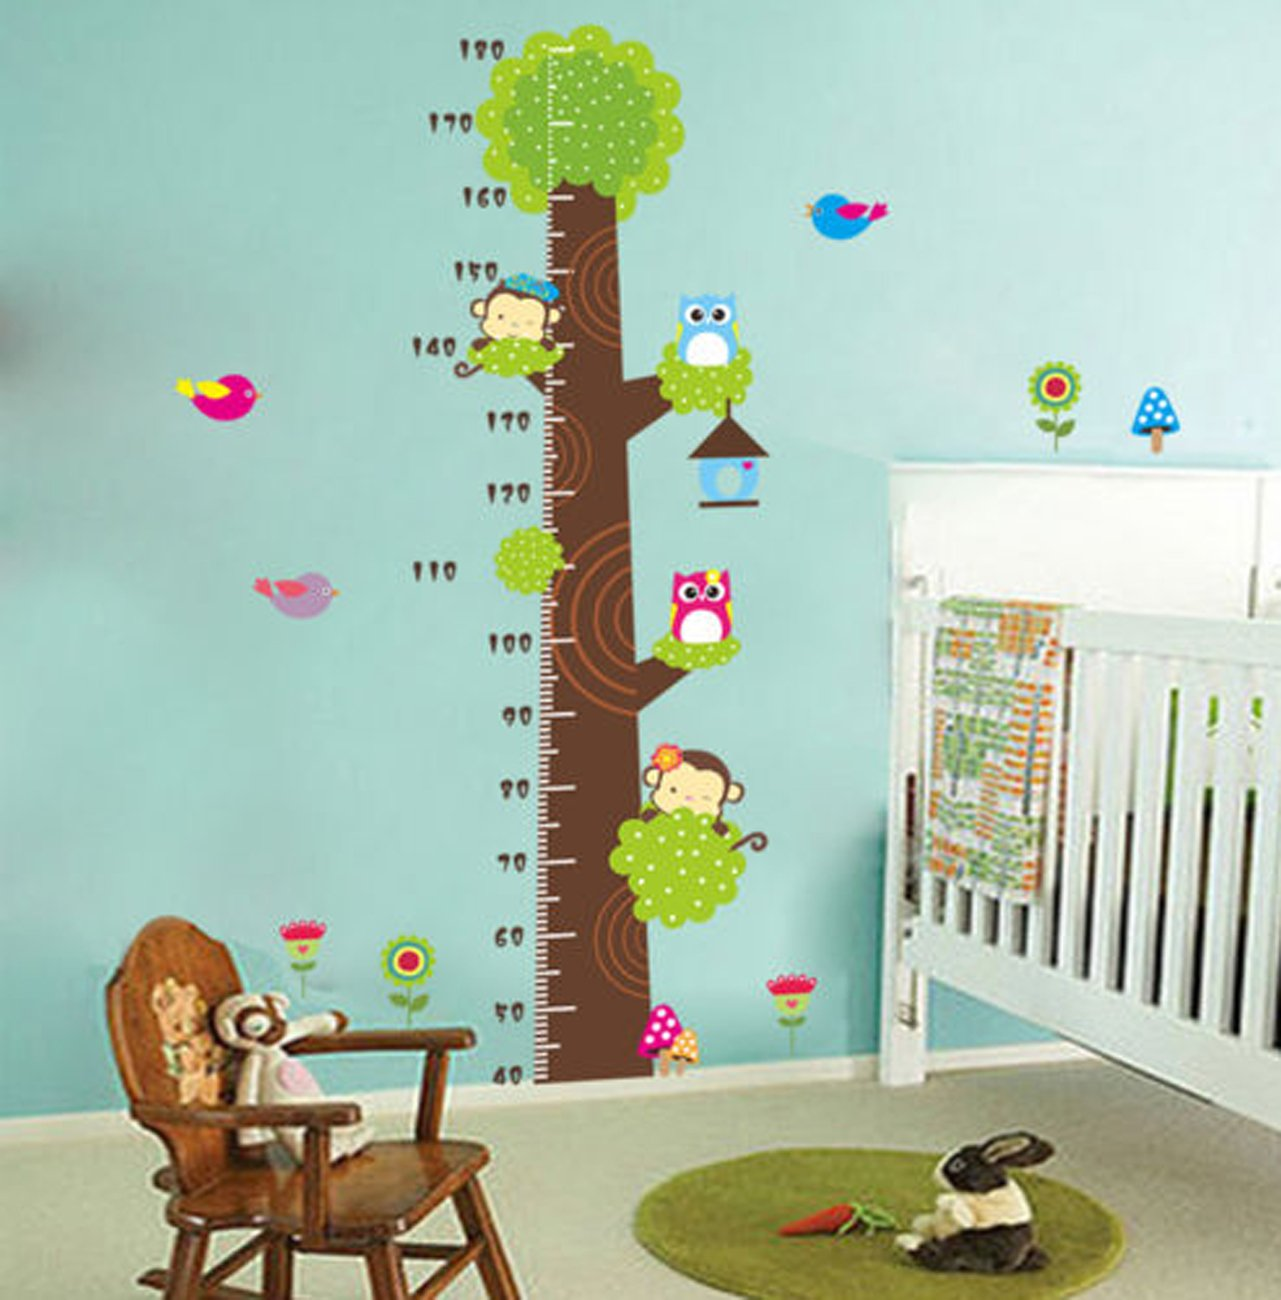 Monkey and Owls Wall Decal Removable Decor Sticker Height Measurement Growth Chart Tree for Boys & Girls Nursery Wall Playroom Children's Bedroom Decor (As the picture) GOODBEE